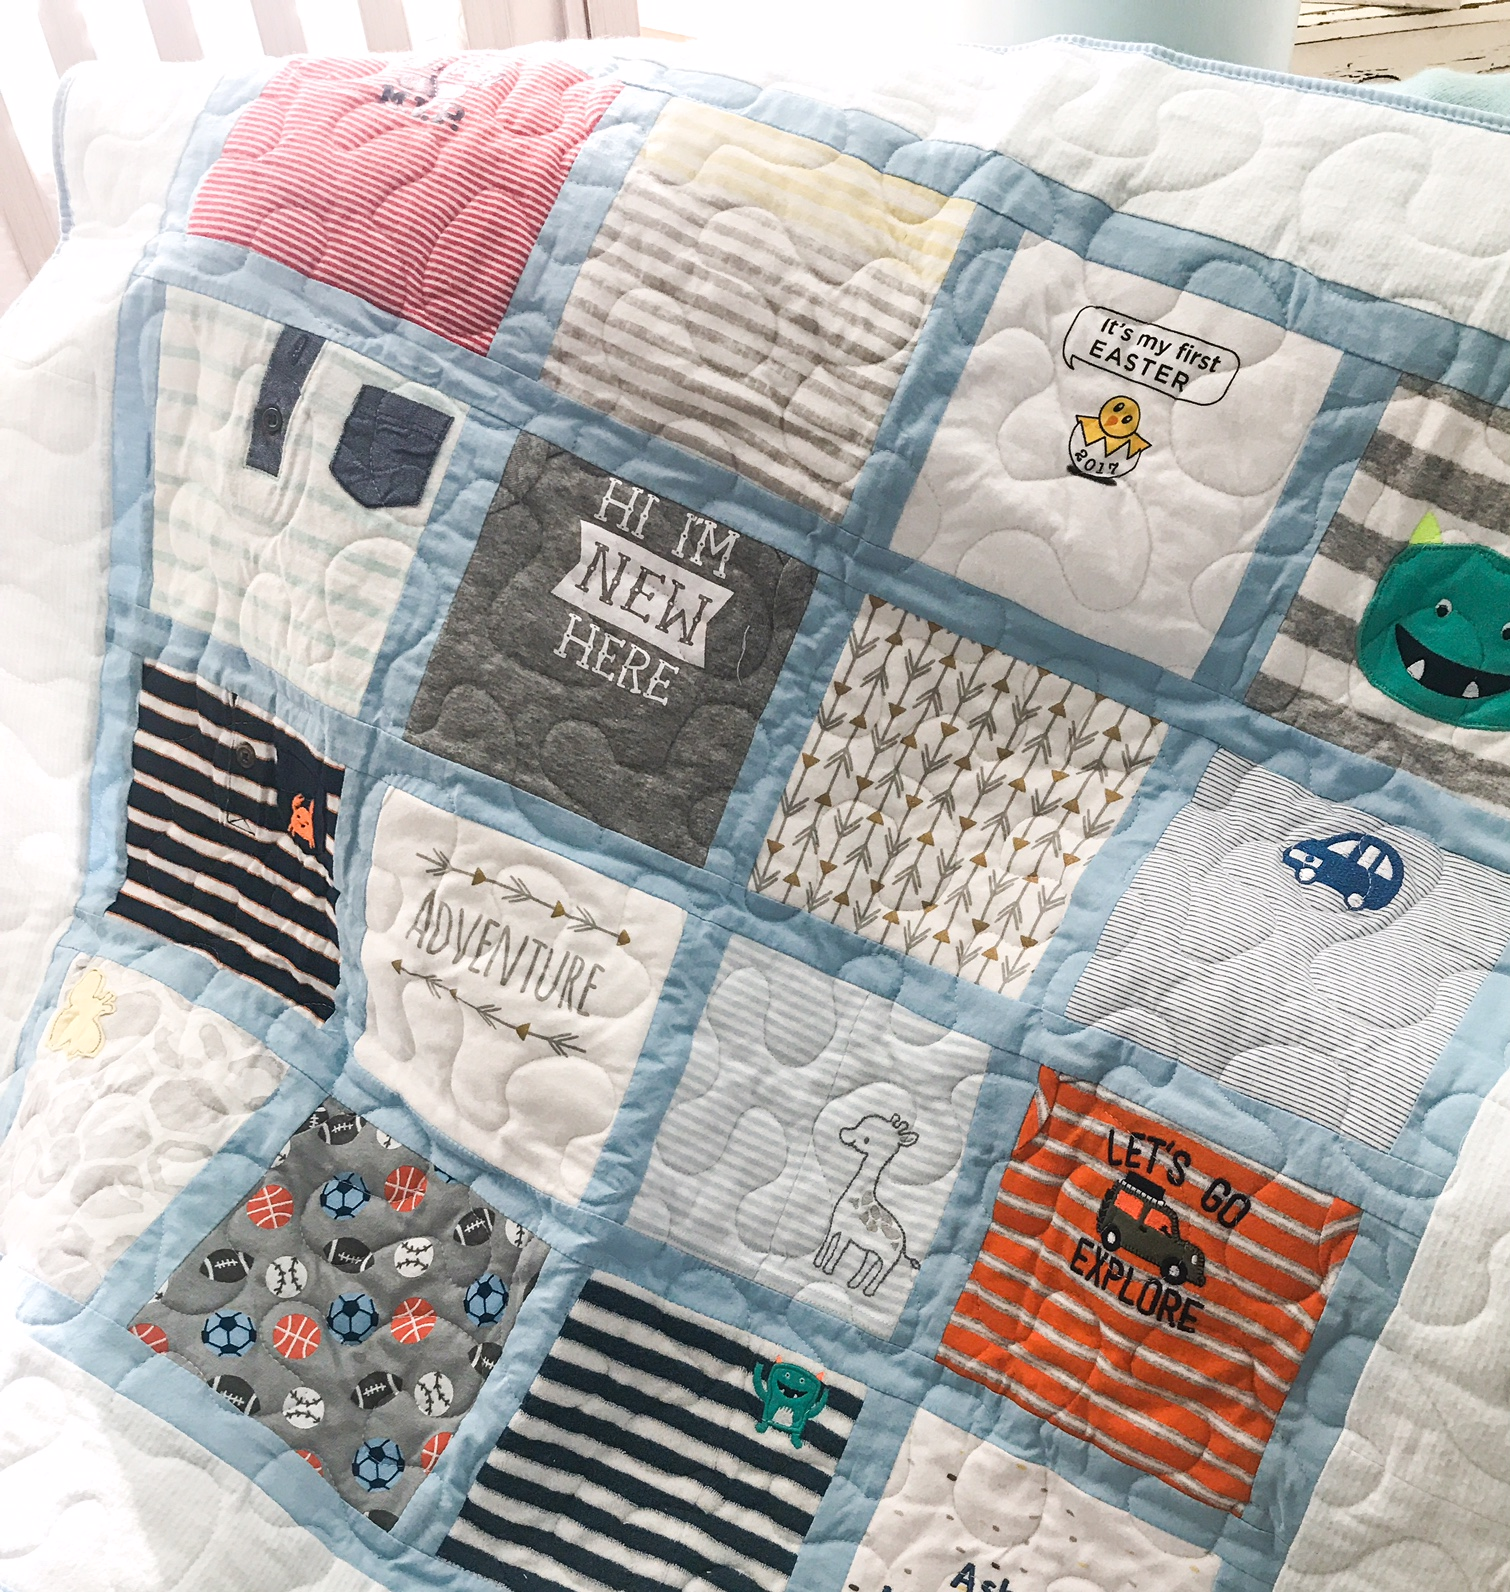 The quilt I had made for our birth mother. I saved many of the onesies I would normally donate and made a 16 square quilt as a keepsake. I will make one for myself as well.